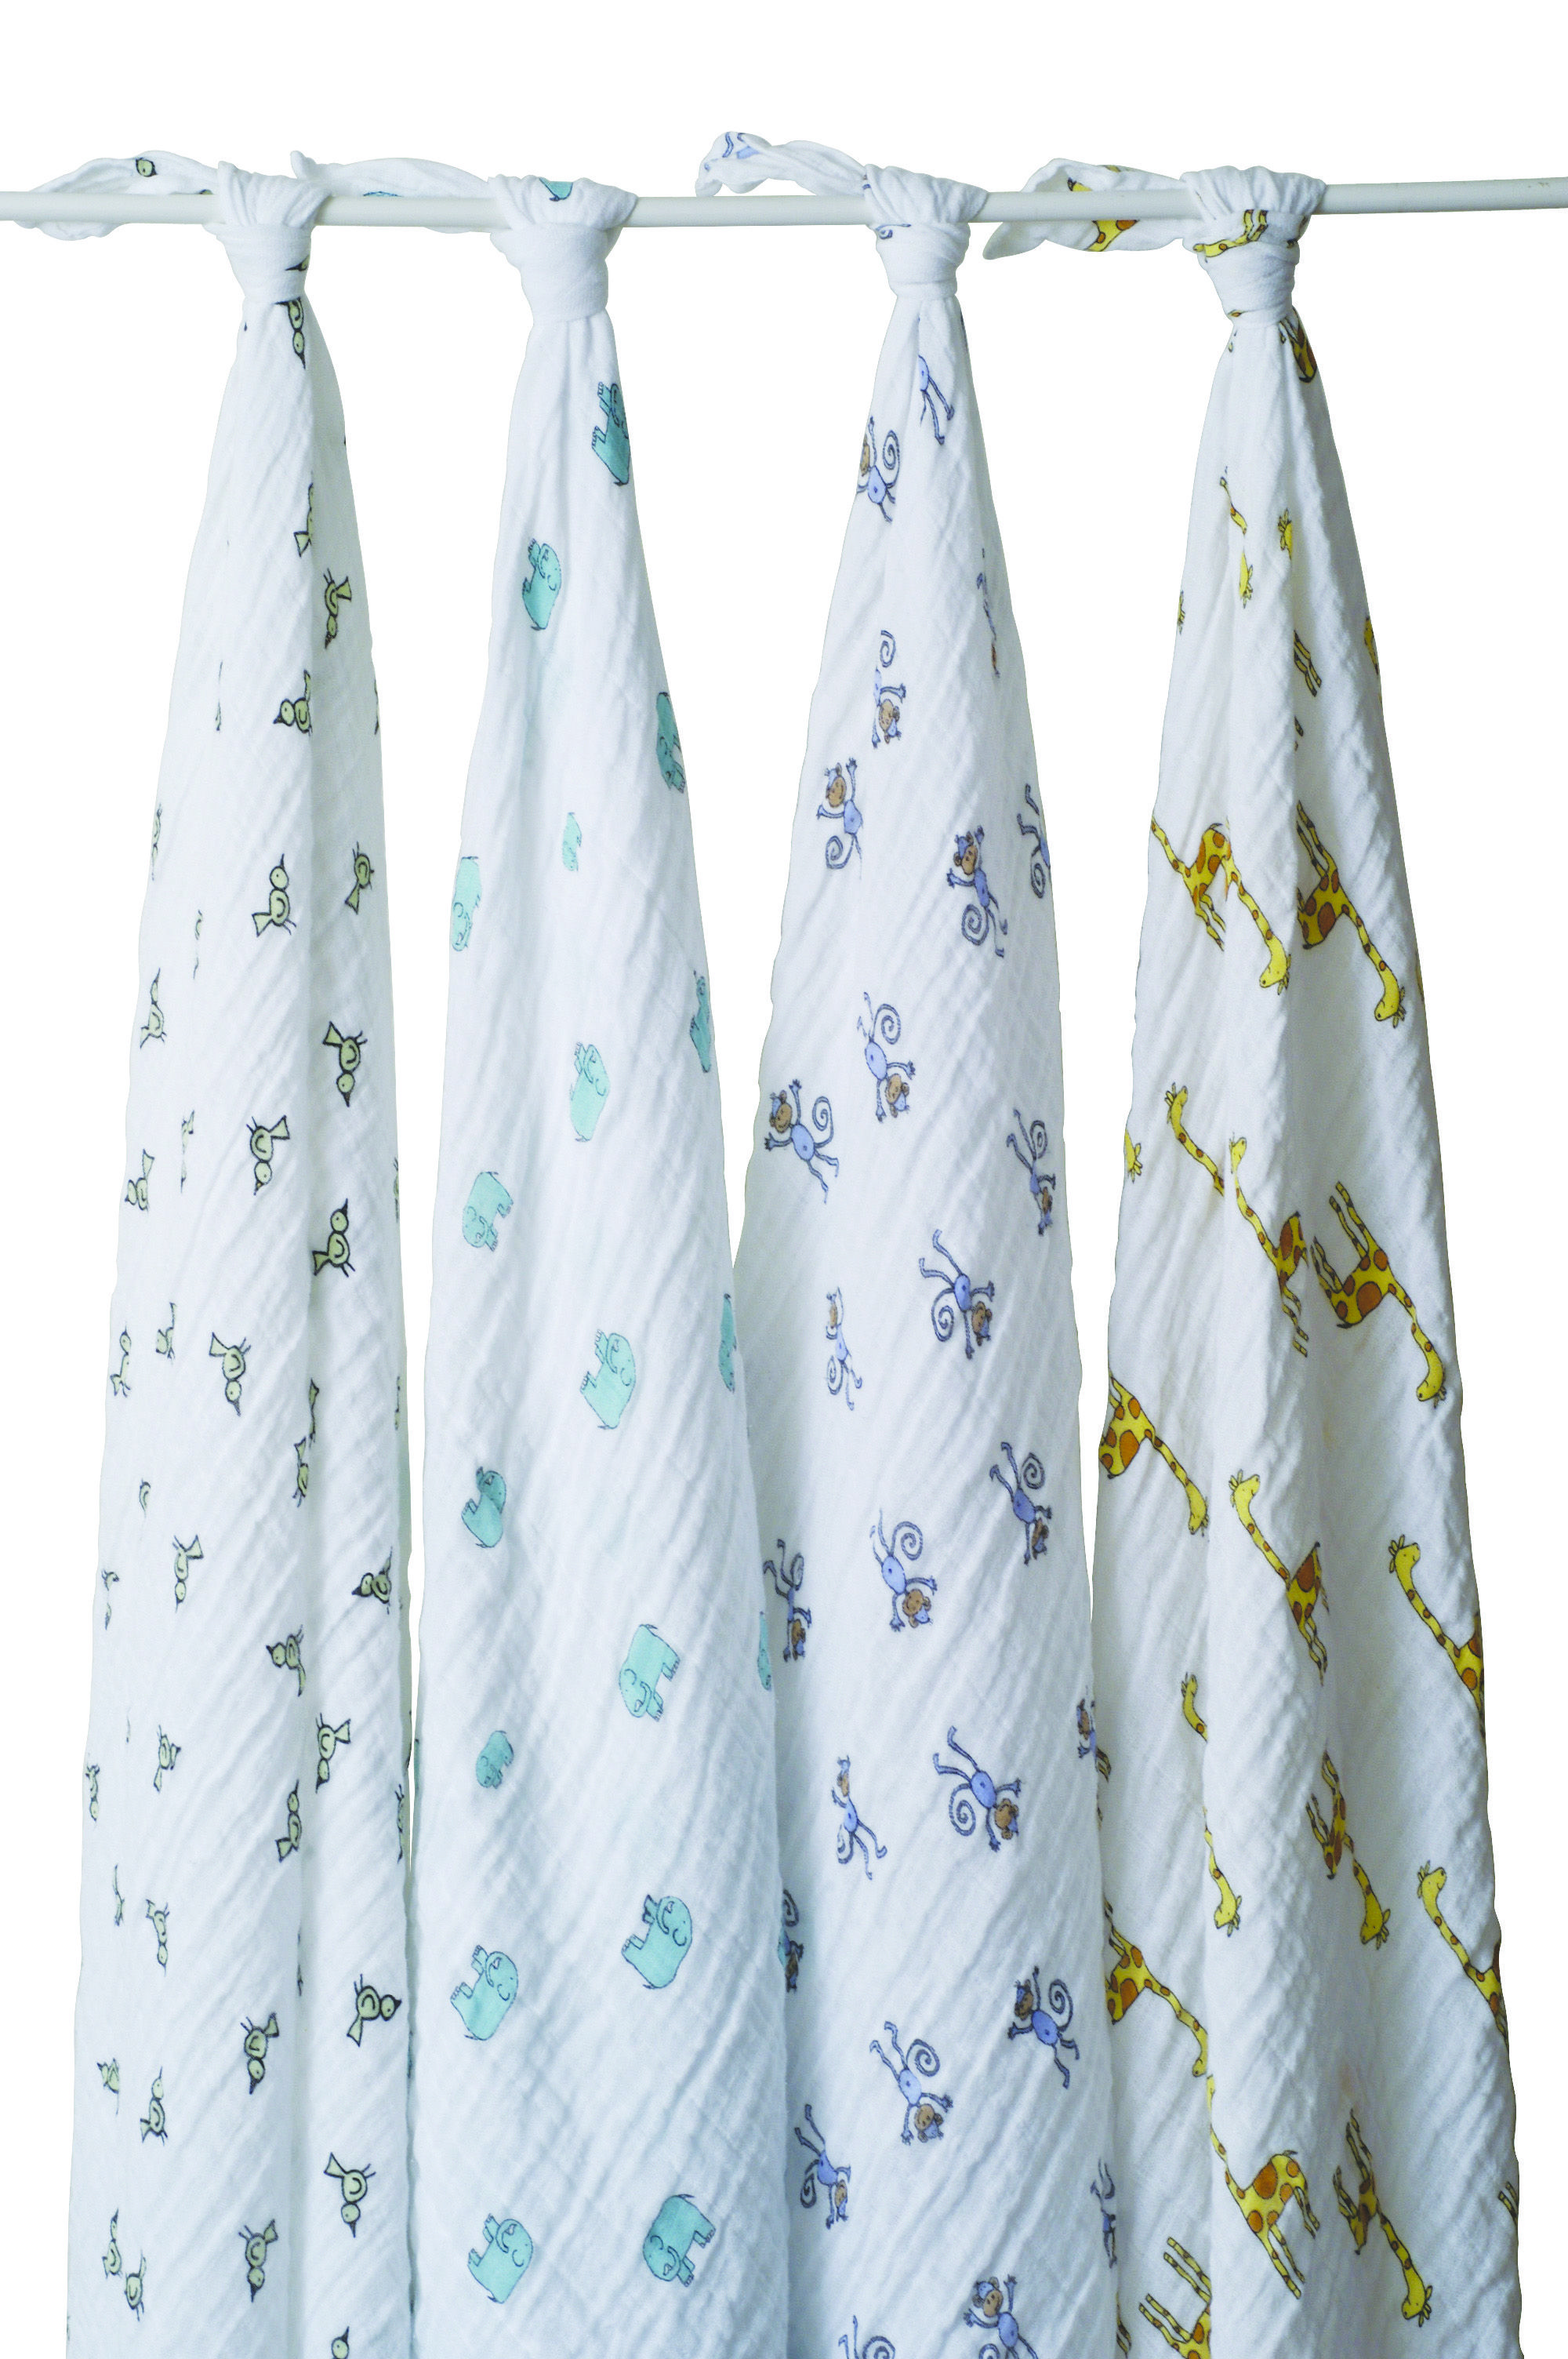 Aden And Anais Swaddle Blankets Cool Newborn Baby Gifts Australia Jungle Jam Aden And Anais 4 Pack Inspiration Design